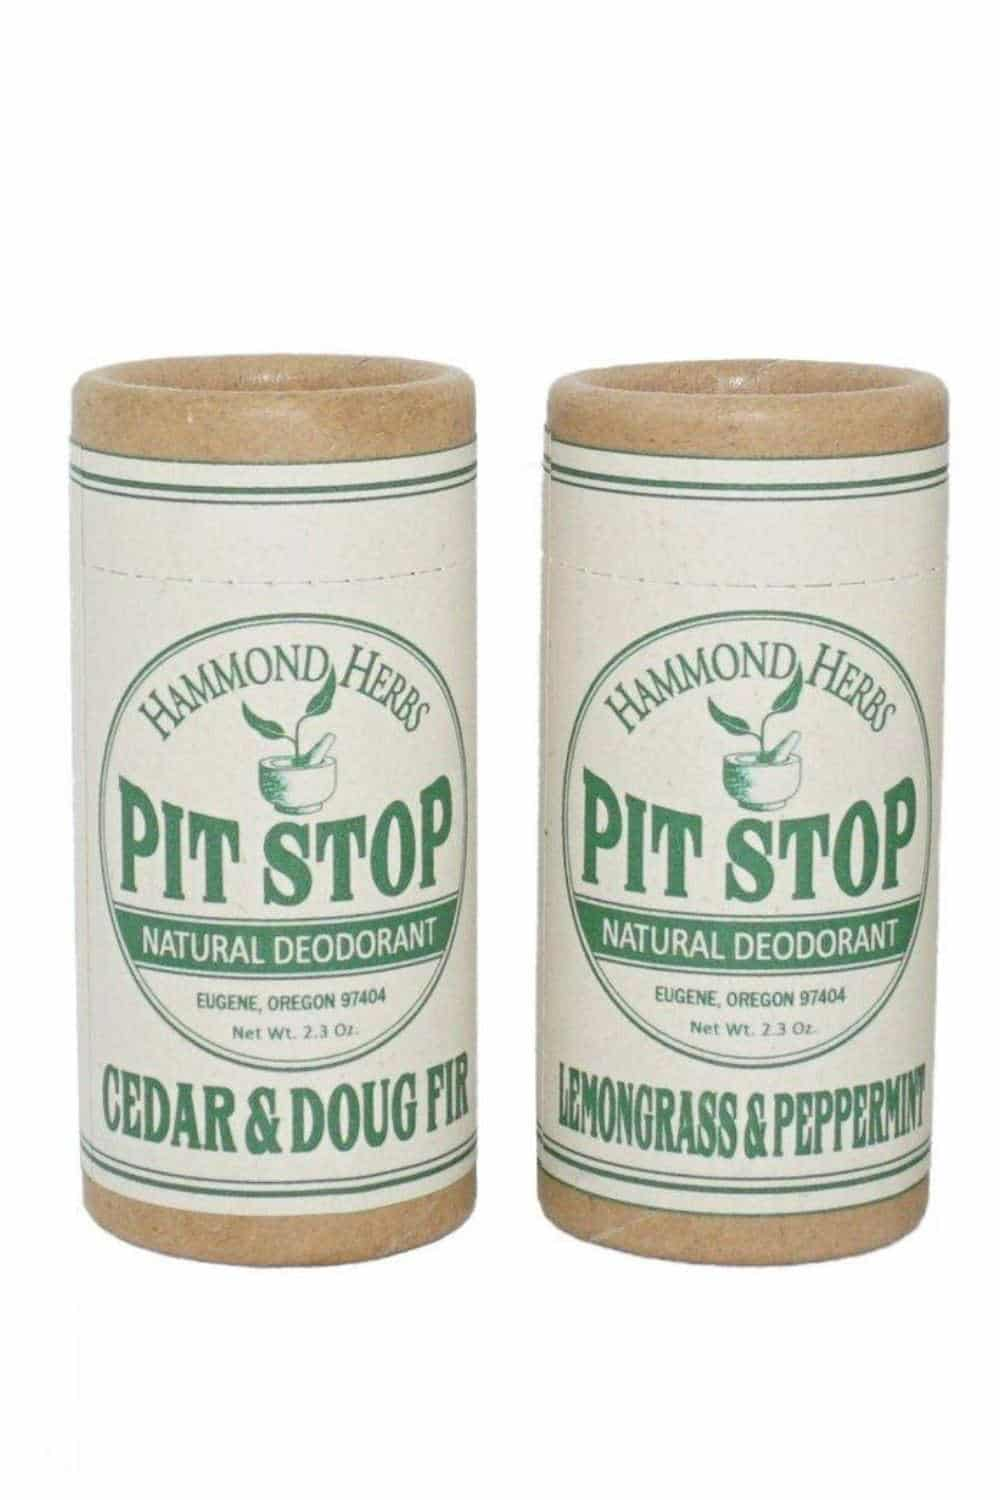 Looking for a zero waste deodorant alternative? Here's our list of options for stink-free sustainable pits Image by Hammond Herbs #zerowastedeodorant #sustainablejungle